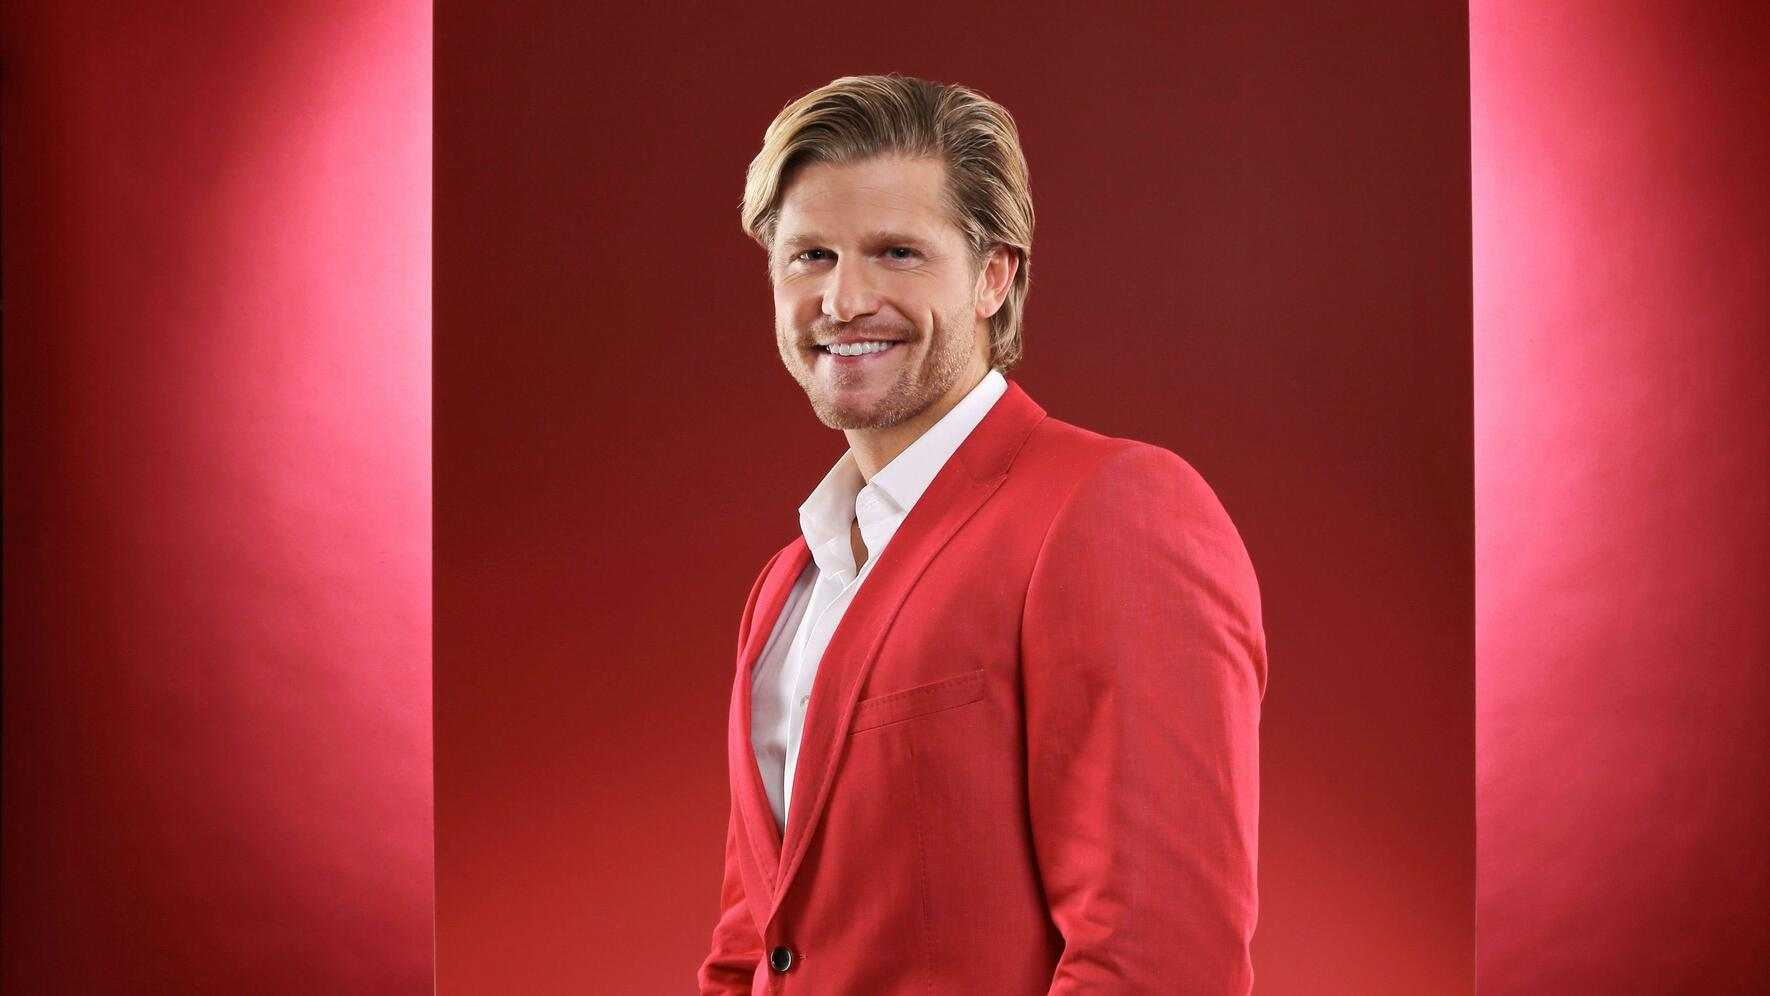 Paul Janke Ex-Bachelor Kandidat bei Lets Dance